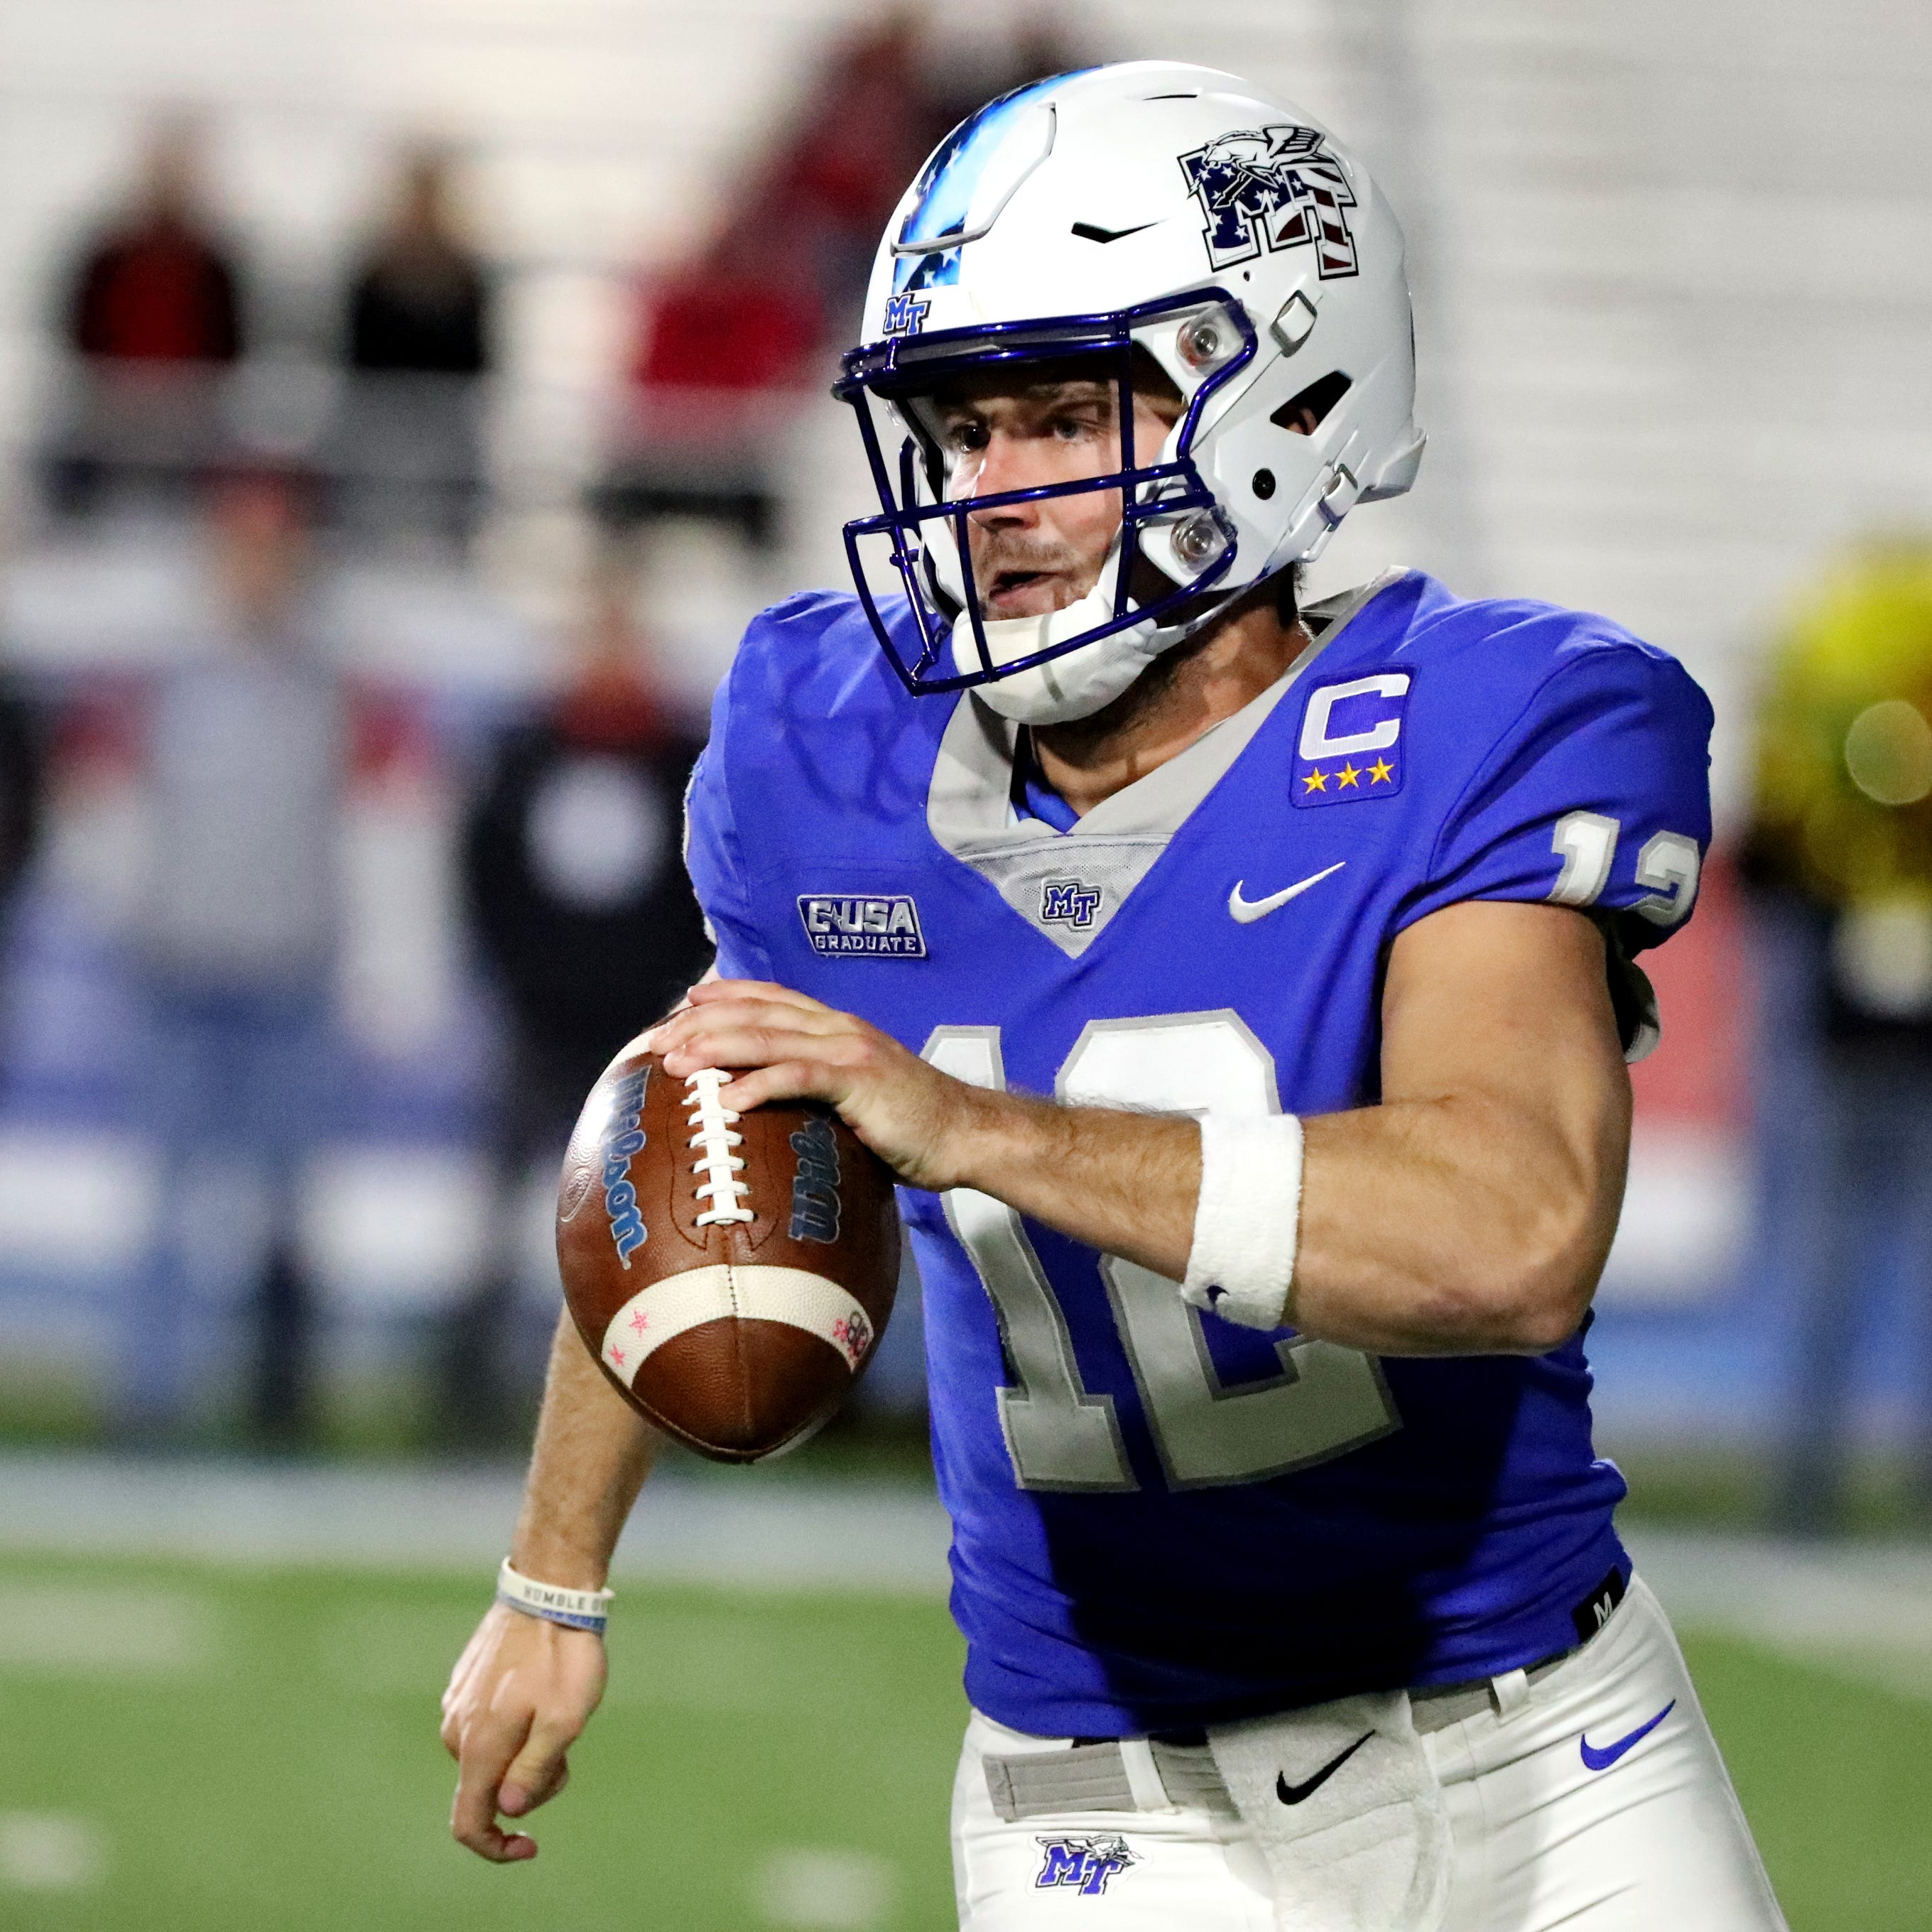 MTSU football at Kentucky: 5 story lines to watch